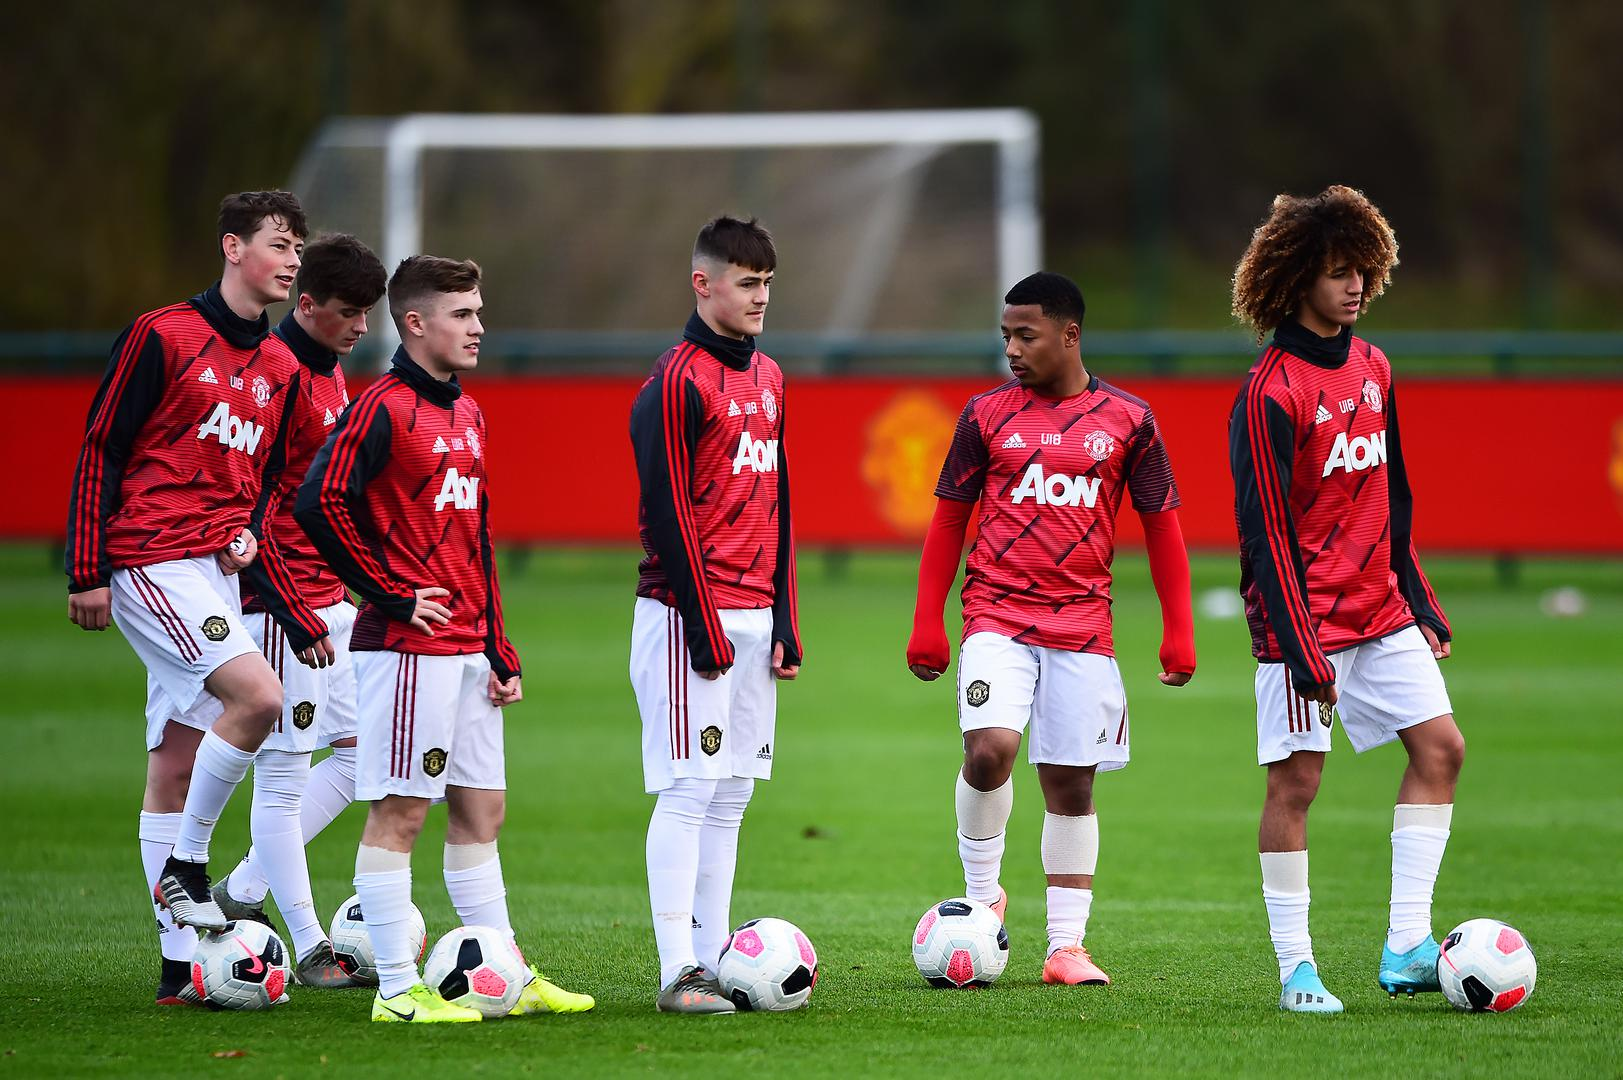 United's Under-18s before a game.